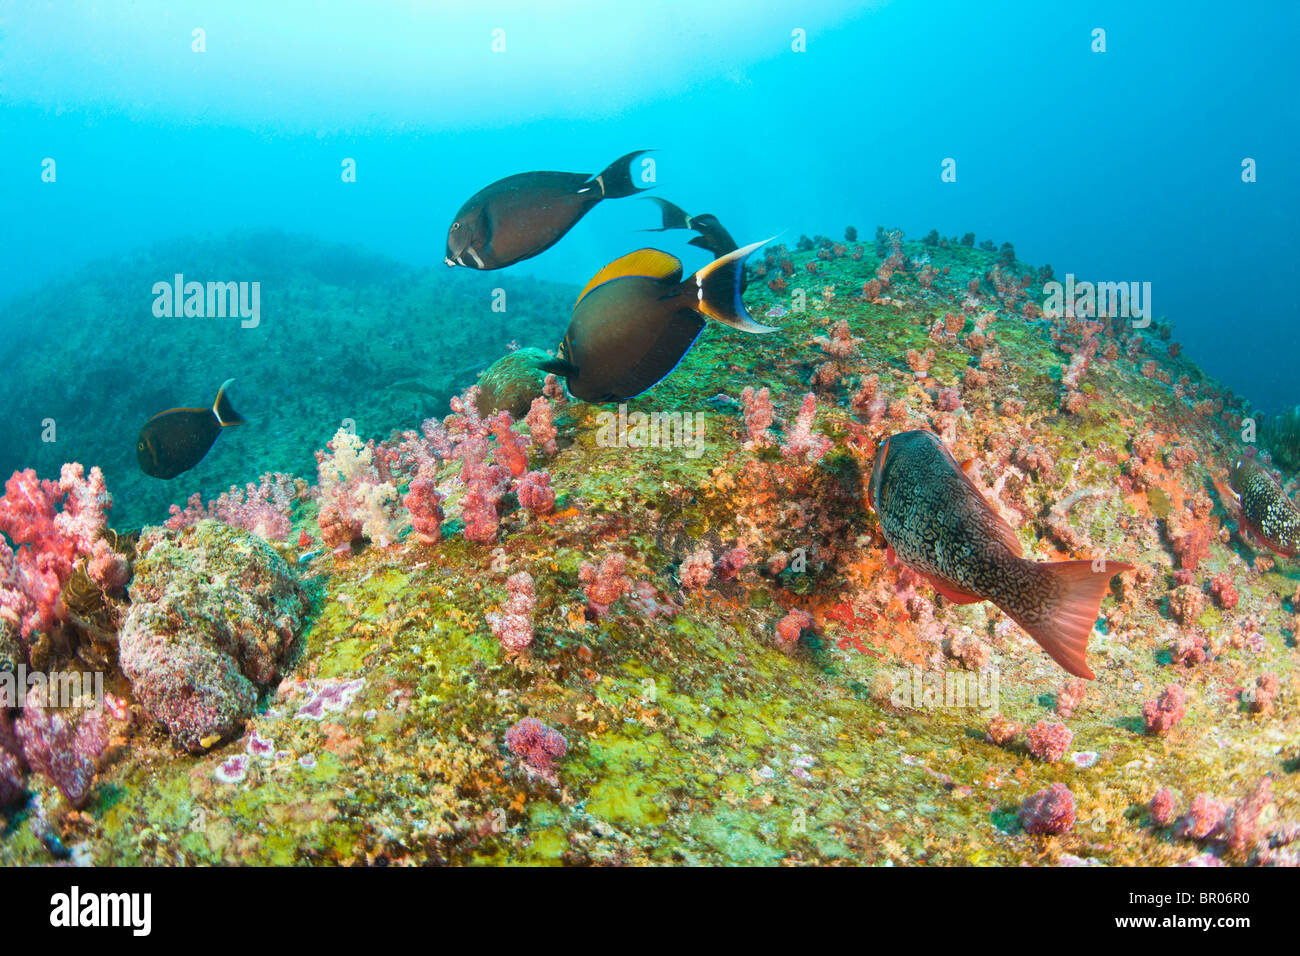 Scuba diving at Similan Islands Underwater Park, Thailand, SE Asia Stock Photo